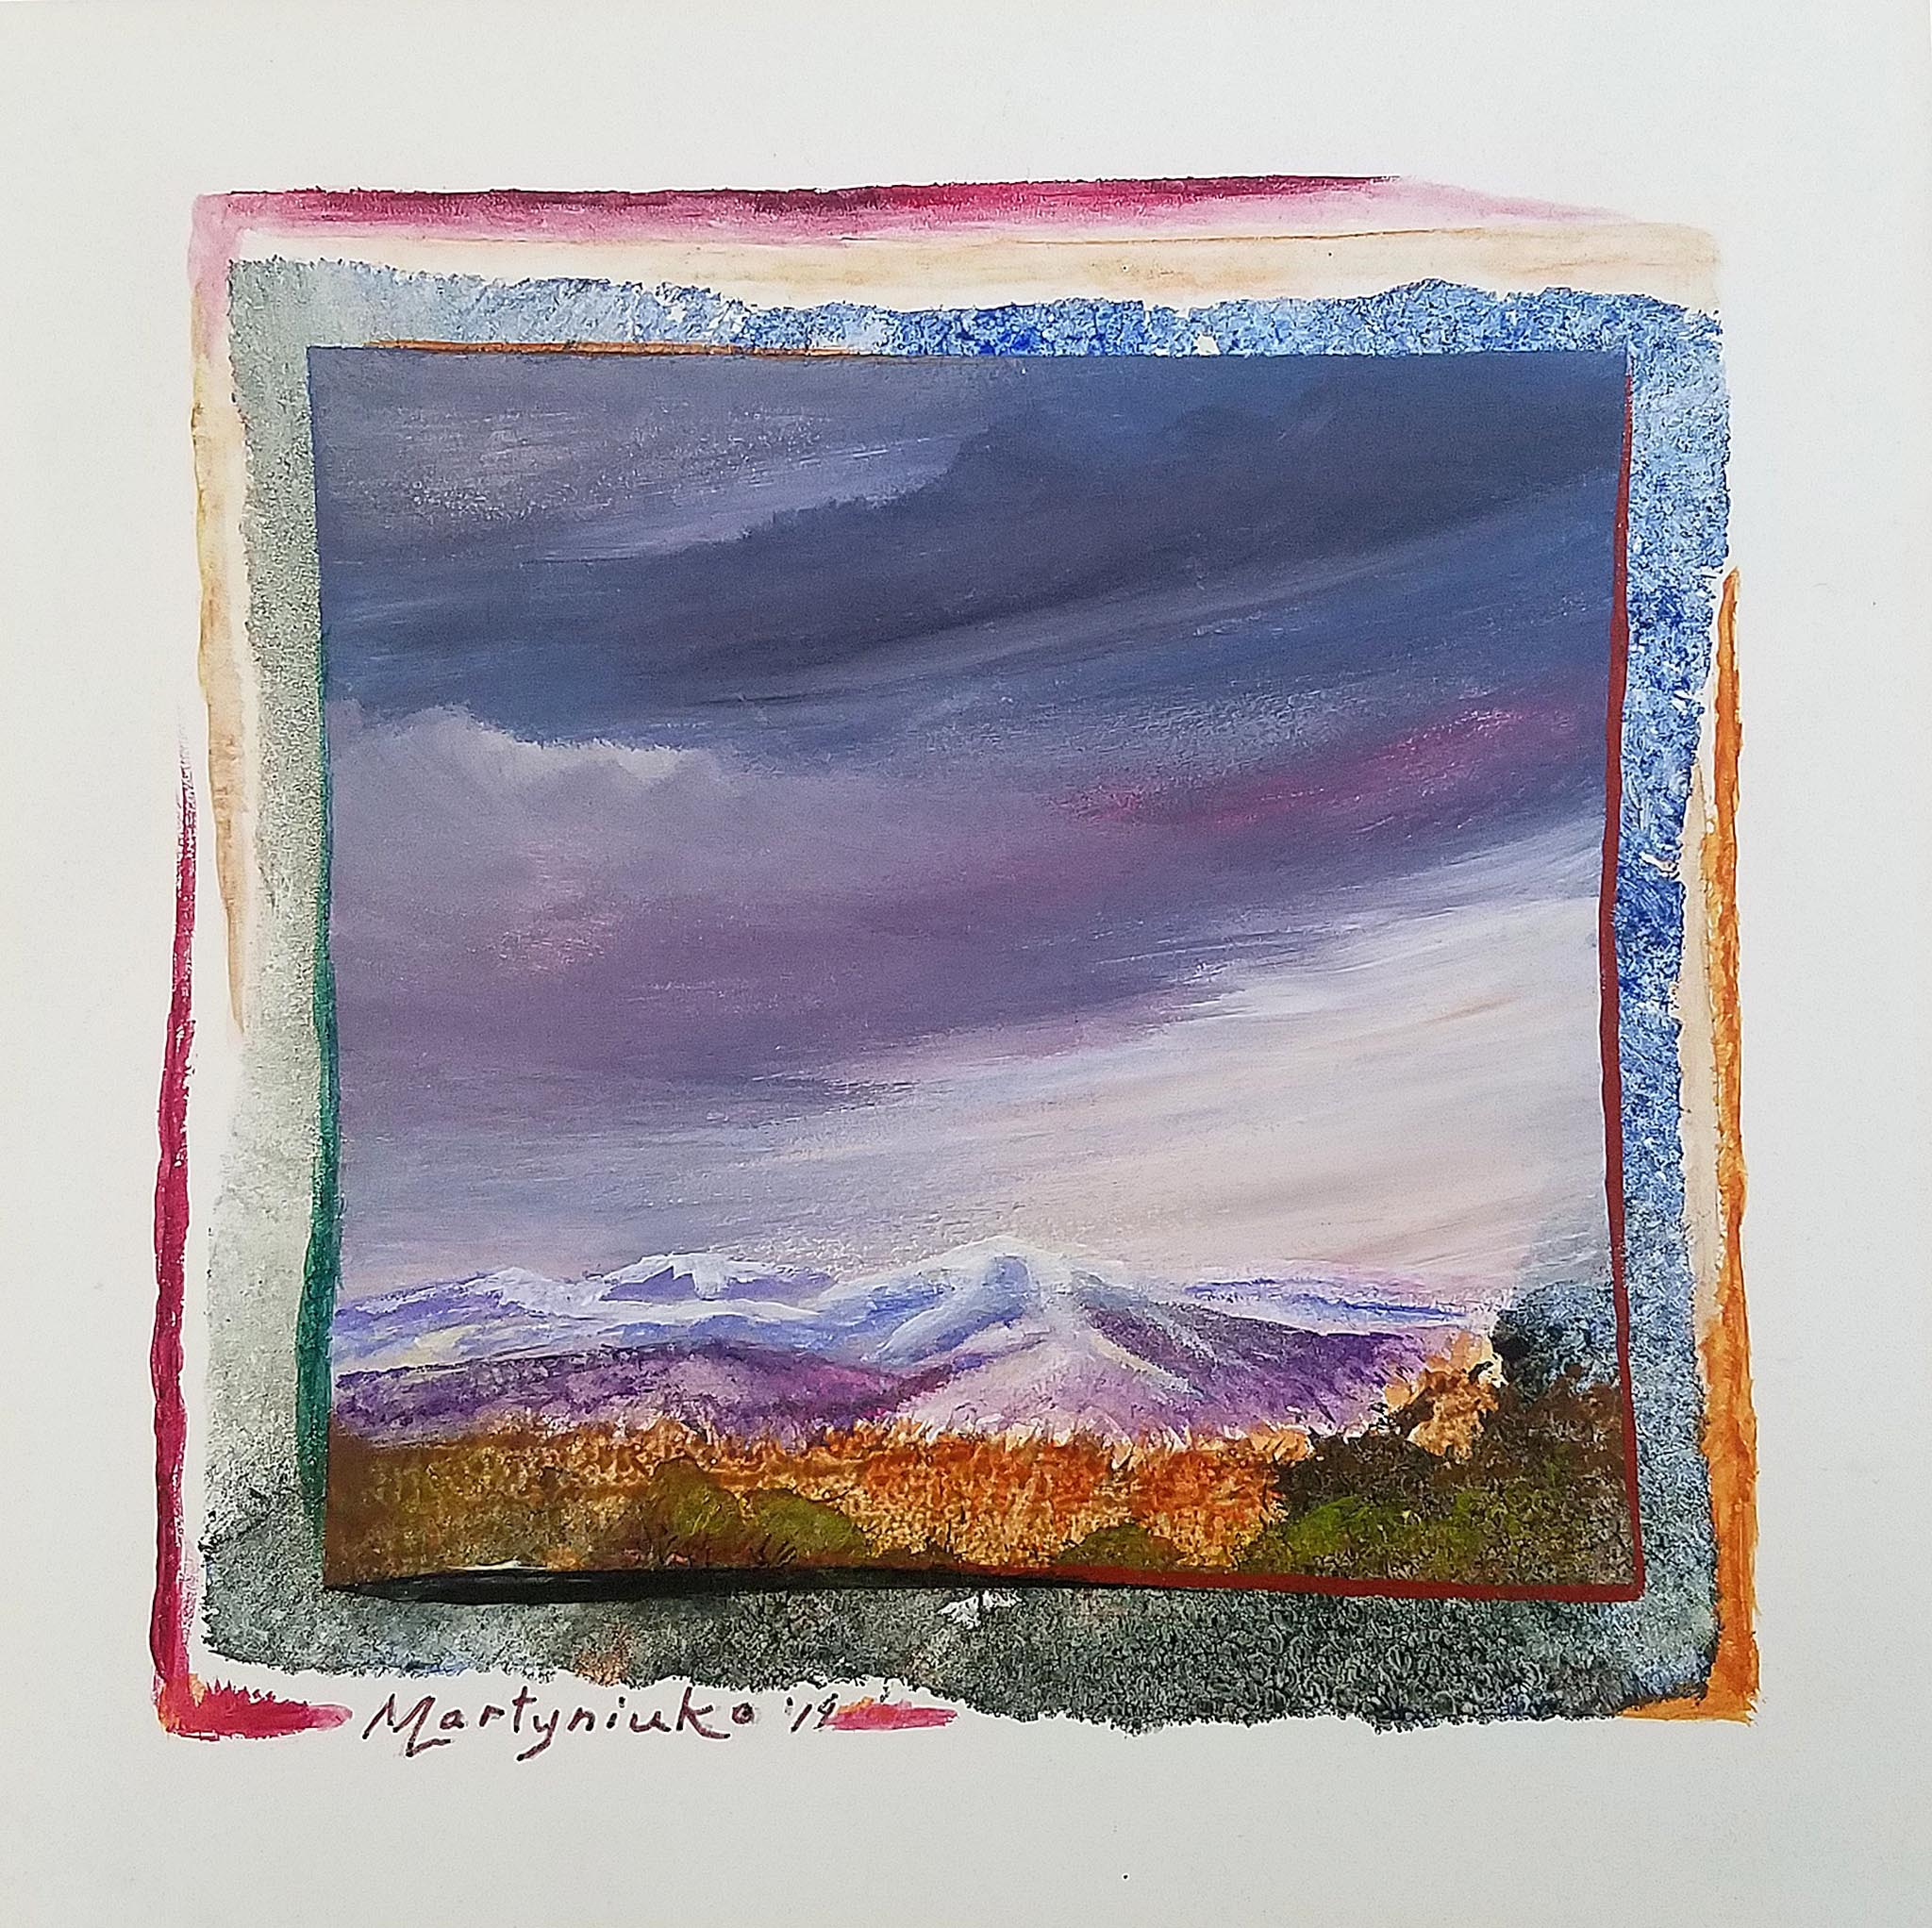 "Hills of Autumn -8"" x 8"" acrylic painting by Larysa Martyniuk"